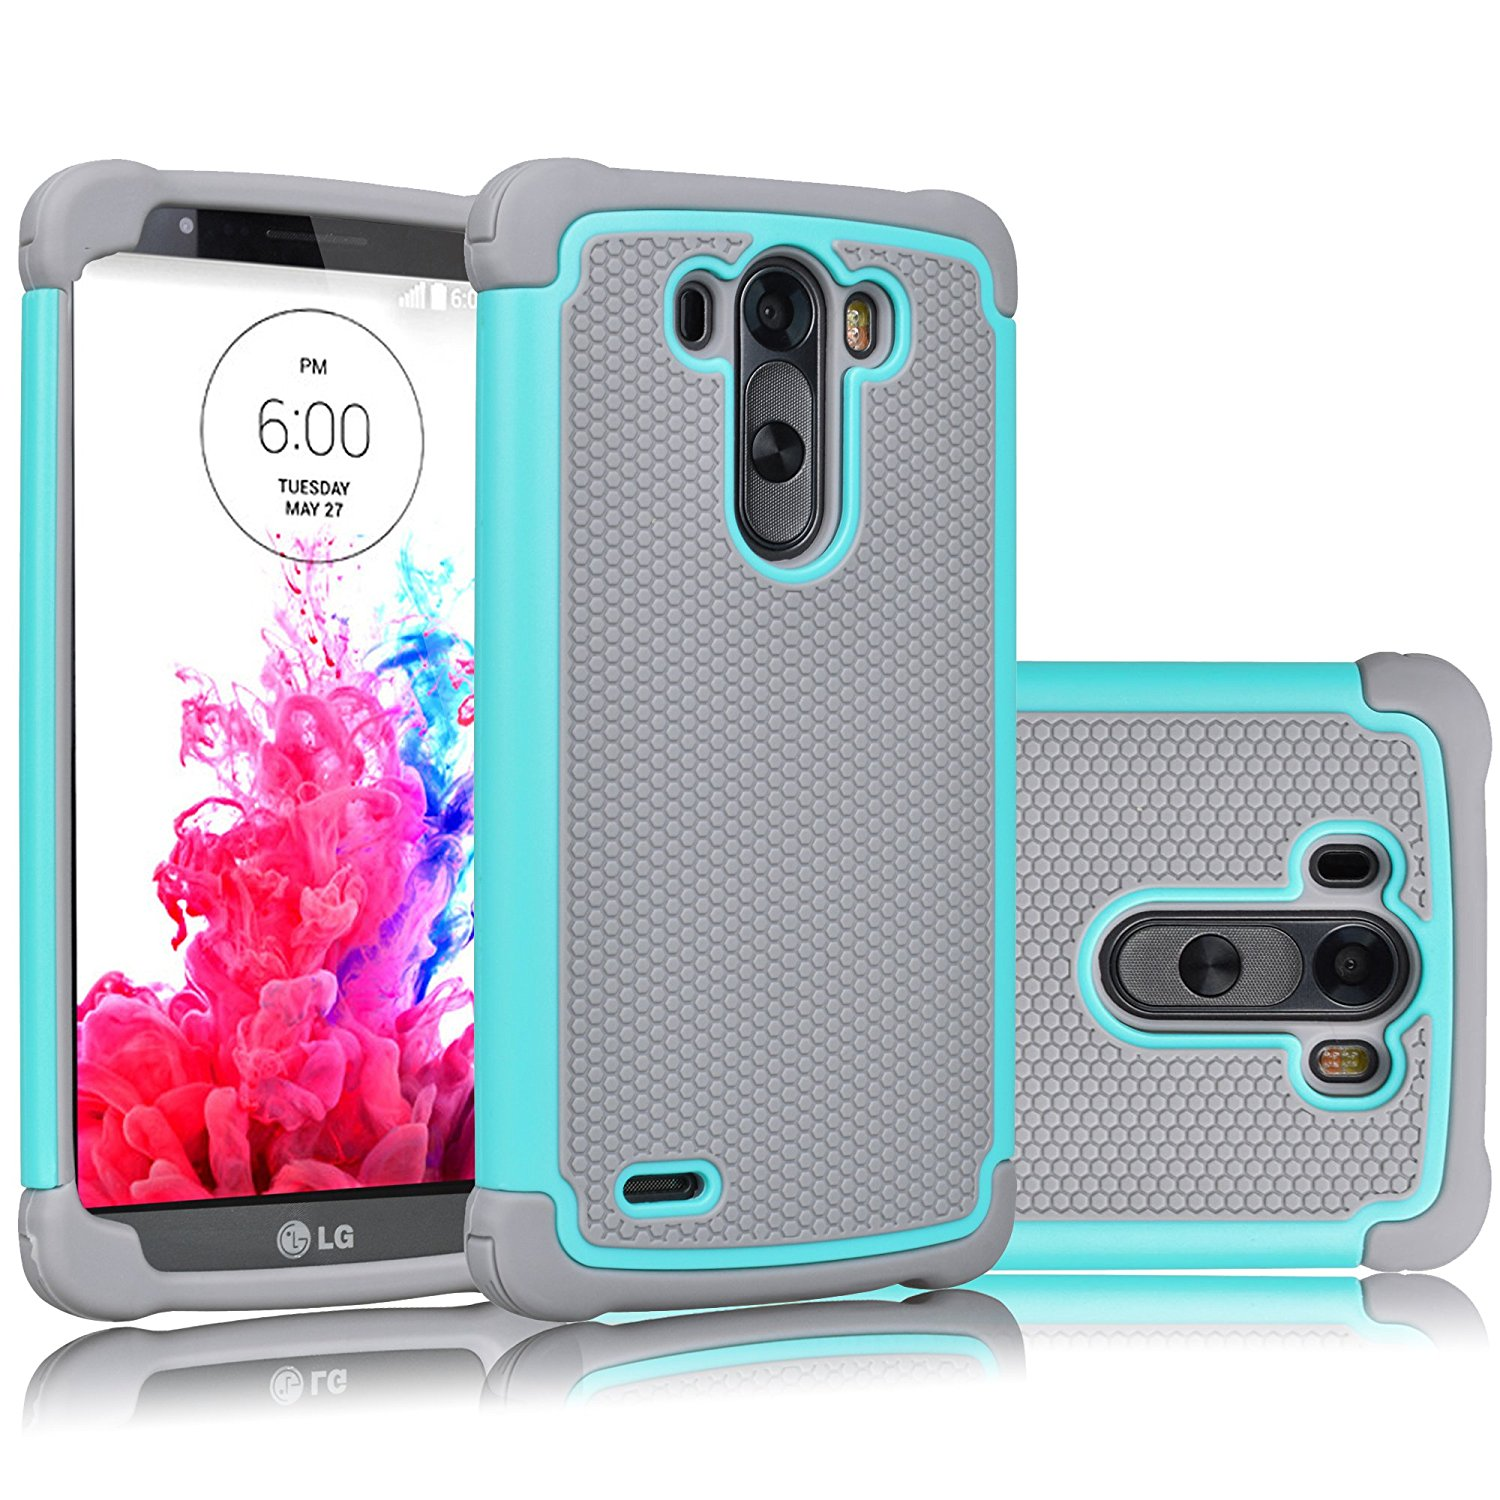 Simply the Best LG G3 Phone Case Roundup